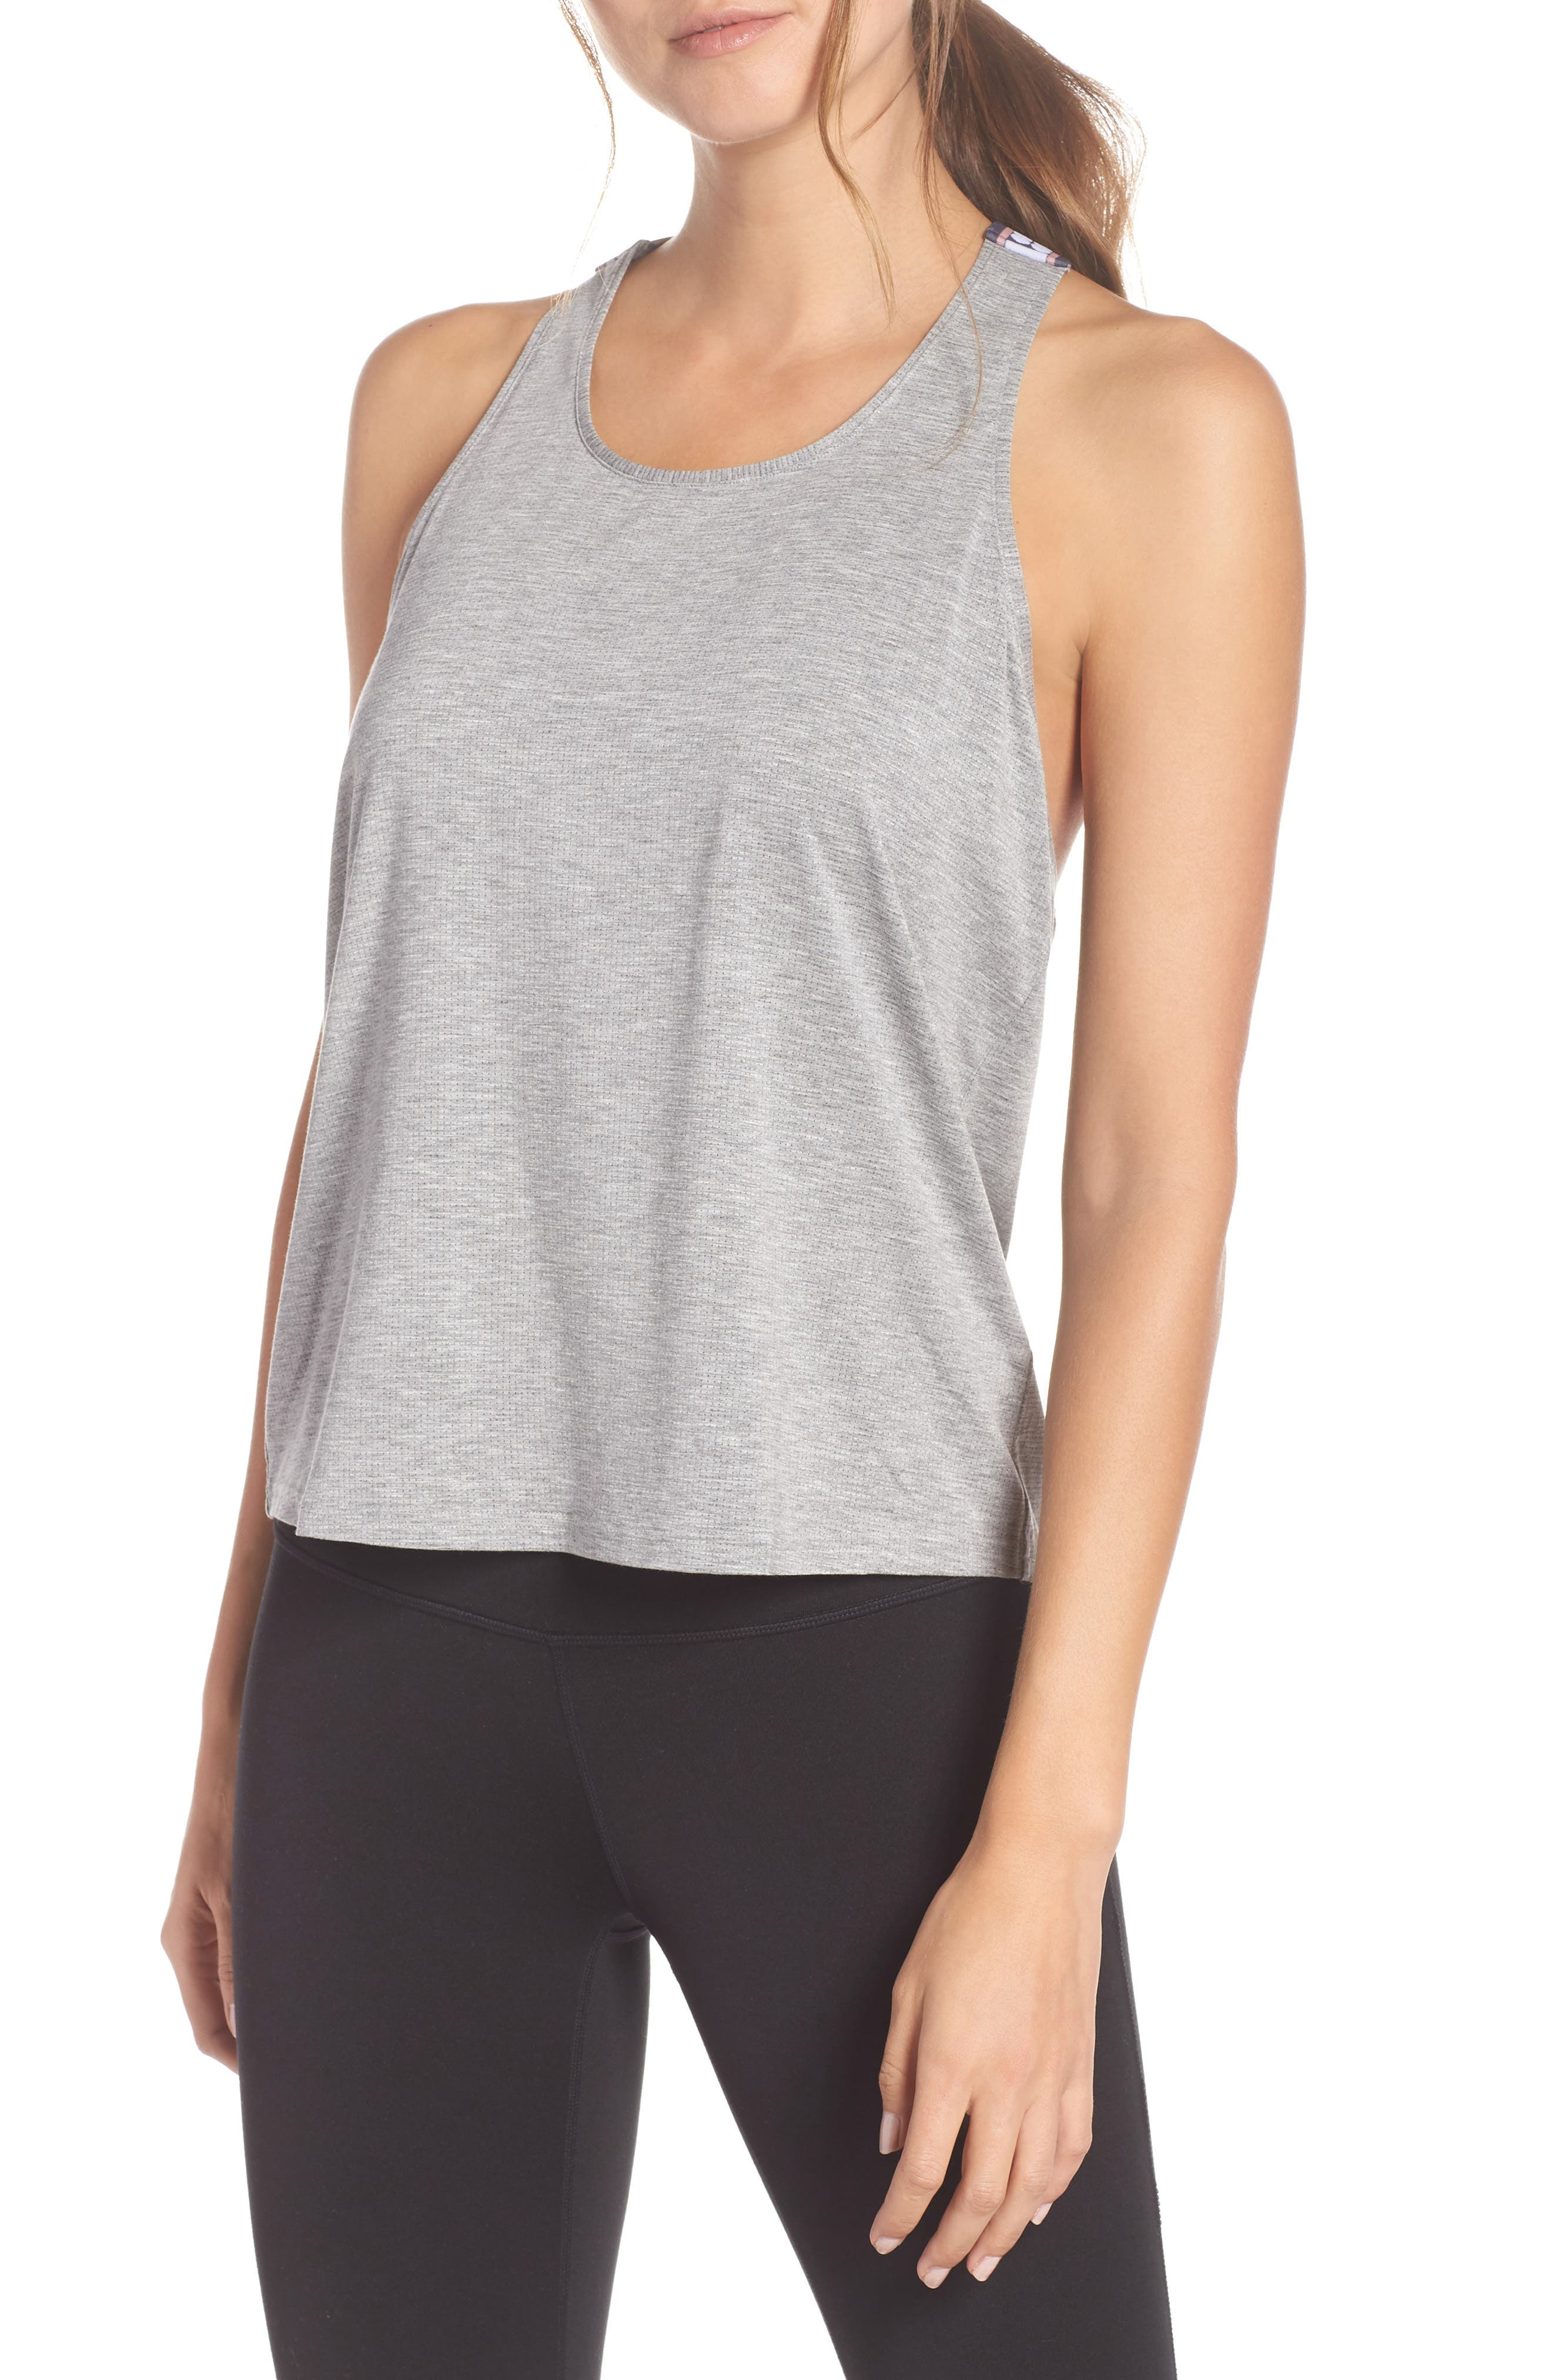 Workout Tank Top,                         Main,                         color, SILVER GREY MARL